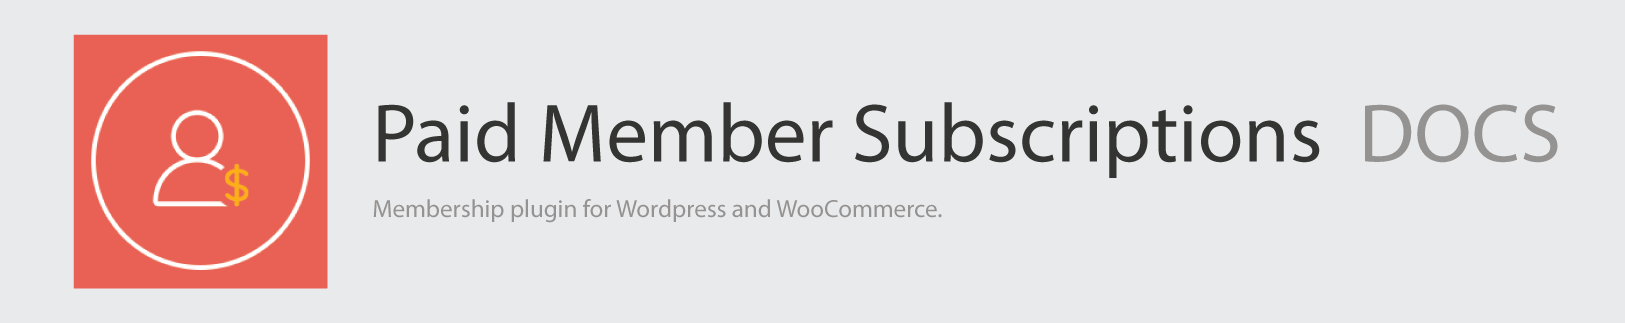 Paid Member Subscriptions Docs Logo v2